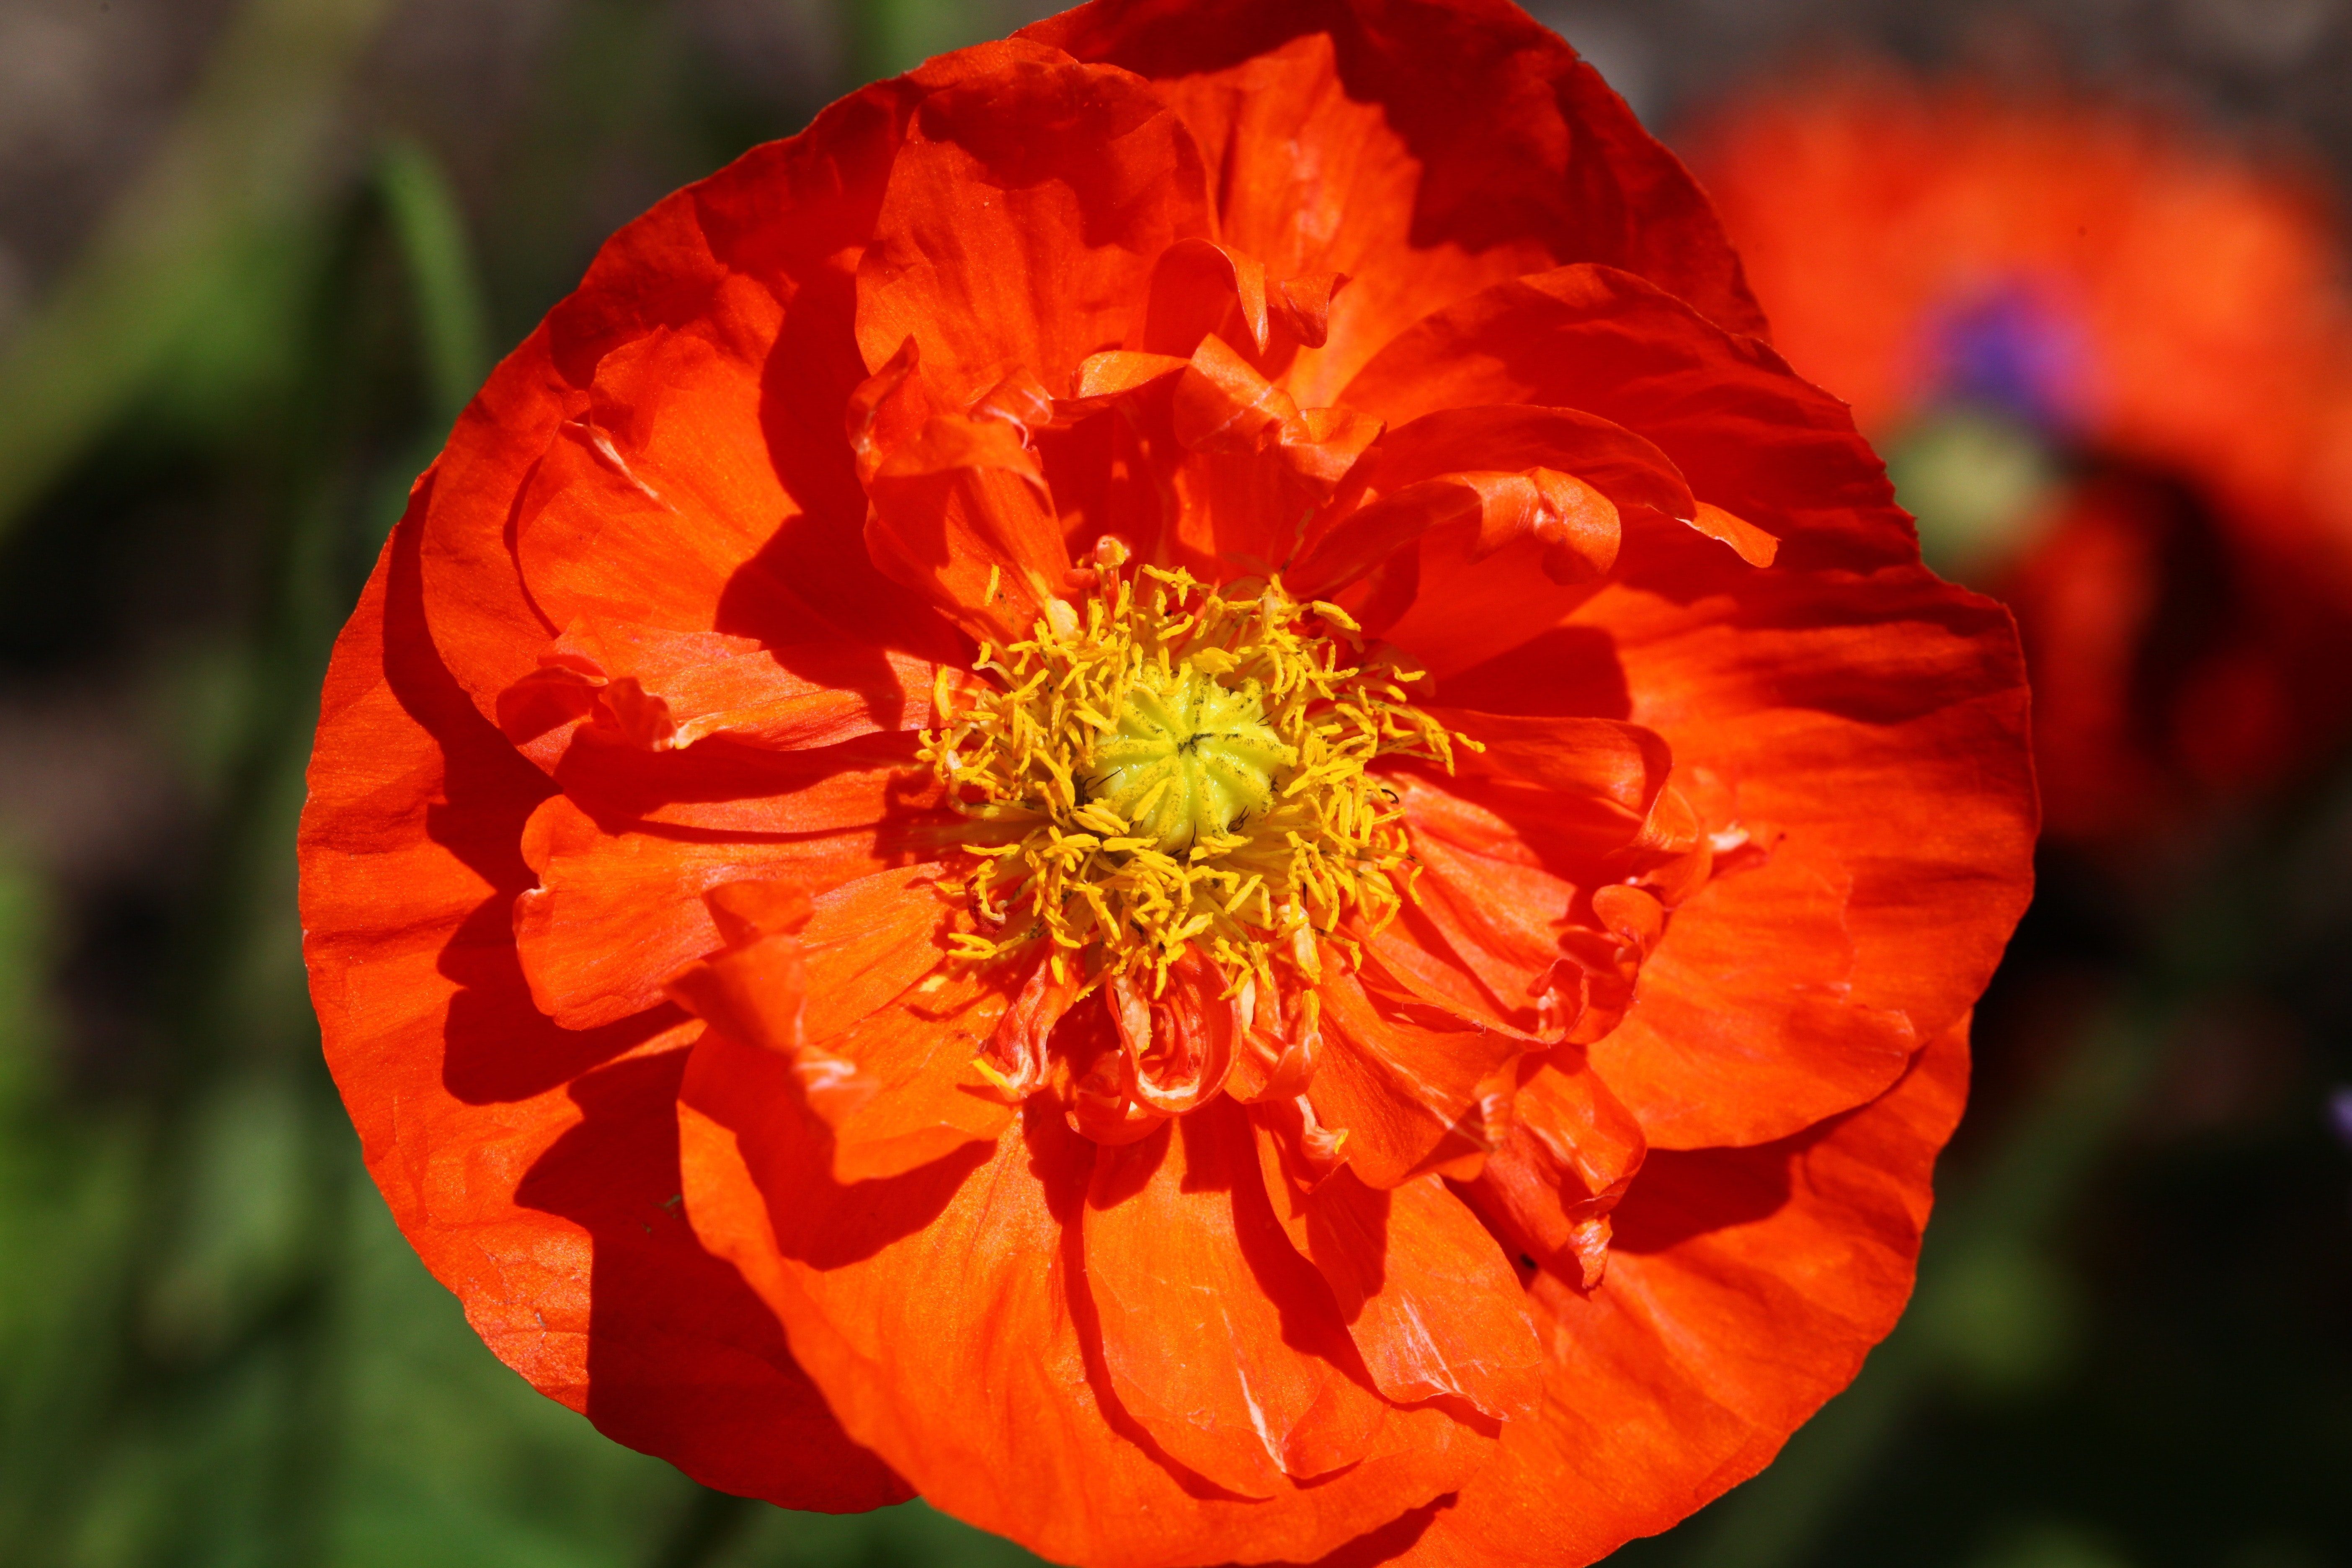 Orange Flower With Yellow Petals, Bloom, Blossom, Close-up, Flora, HQ Photo